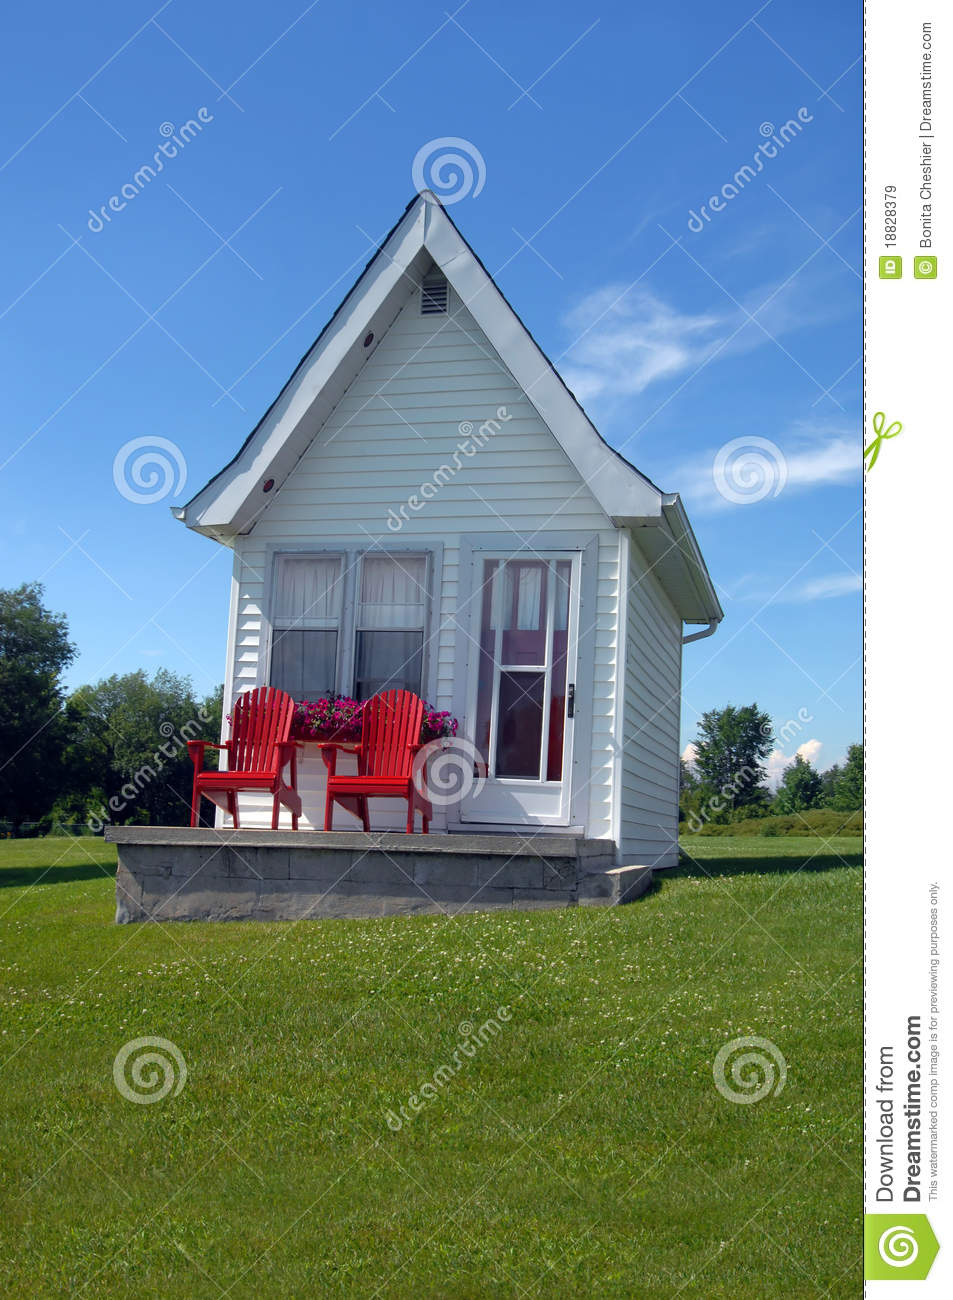 wooden porch chairs teen bean bag chair quaint cottage royalty free stock images - image: 18828379